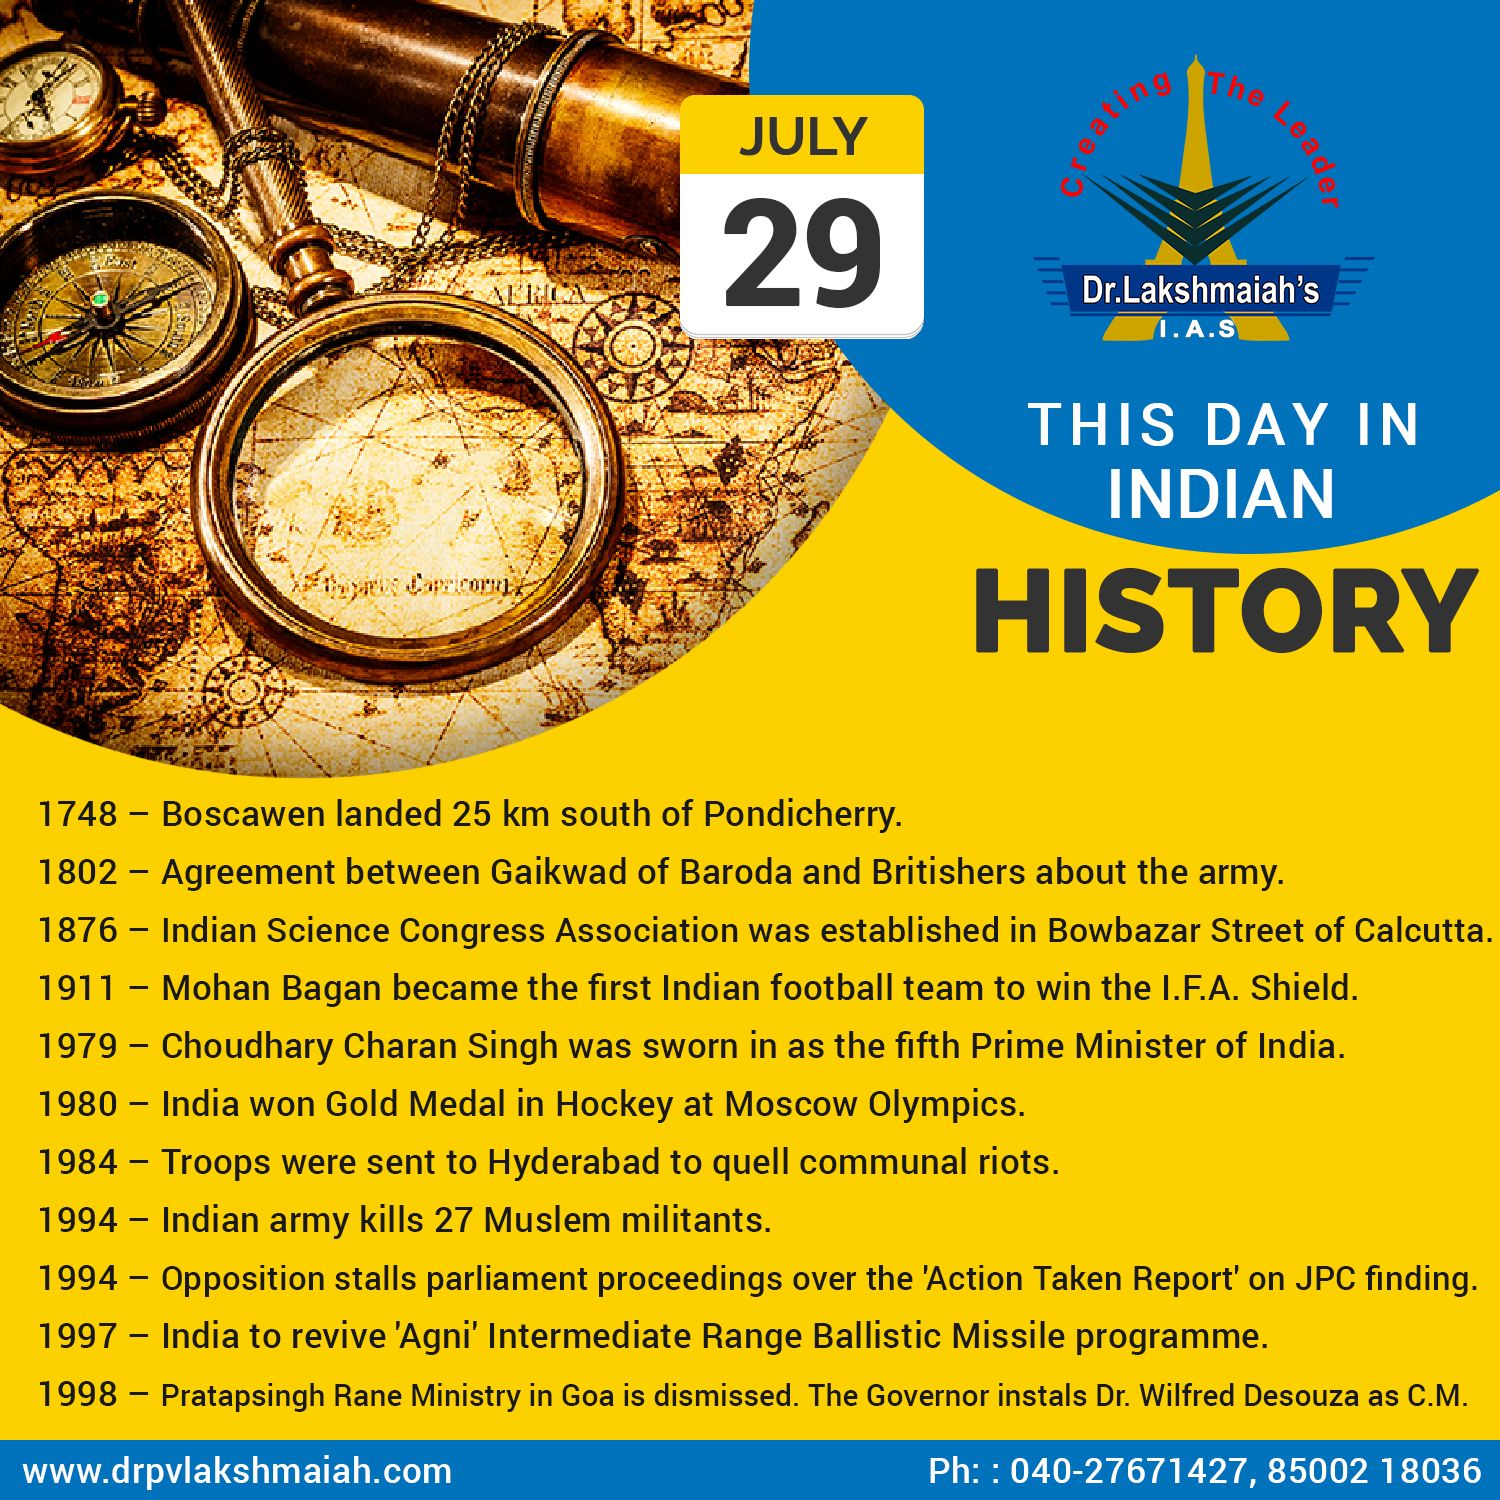 July 29th in INDIAN History. For more info visit www